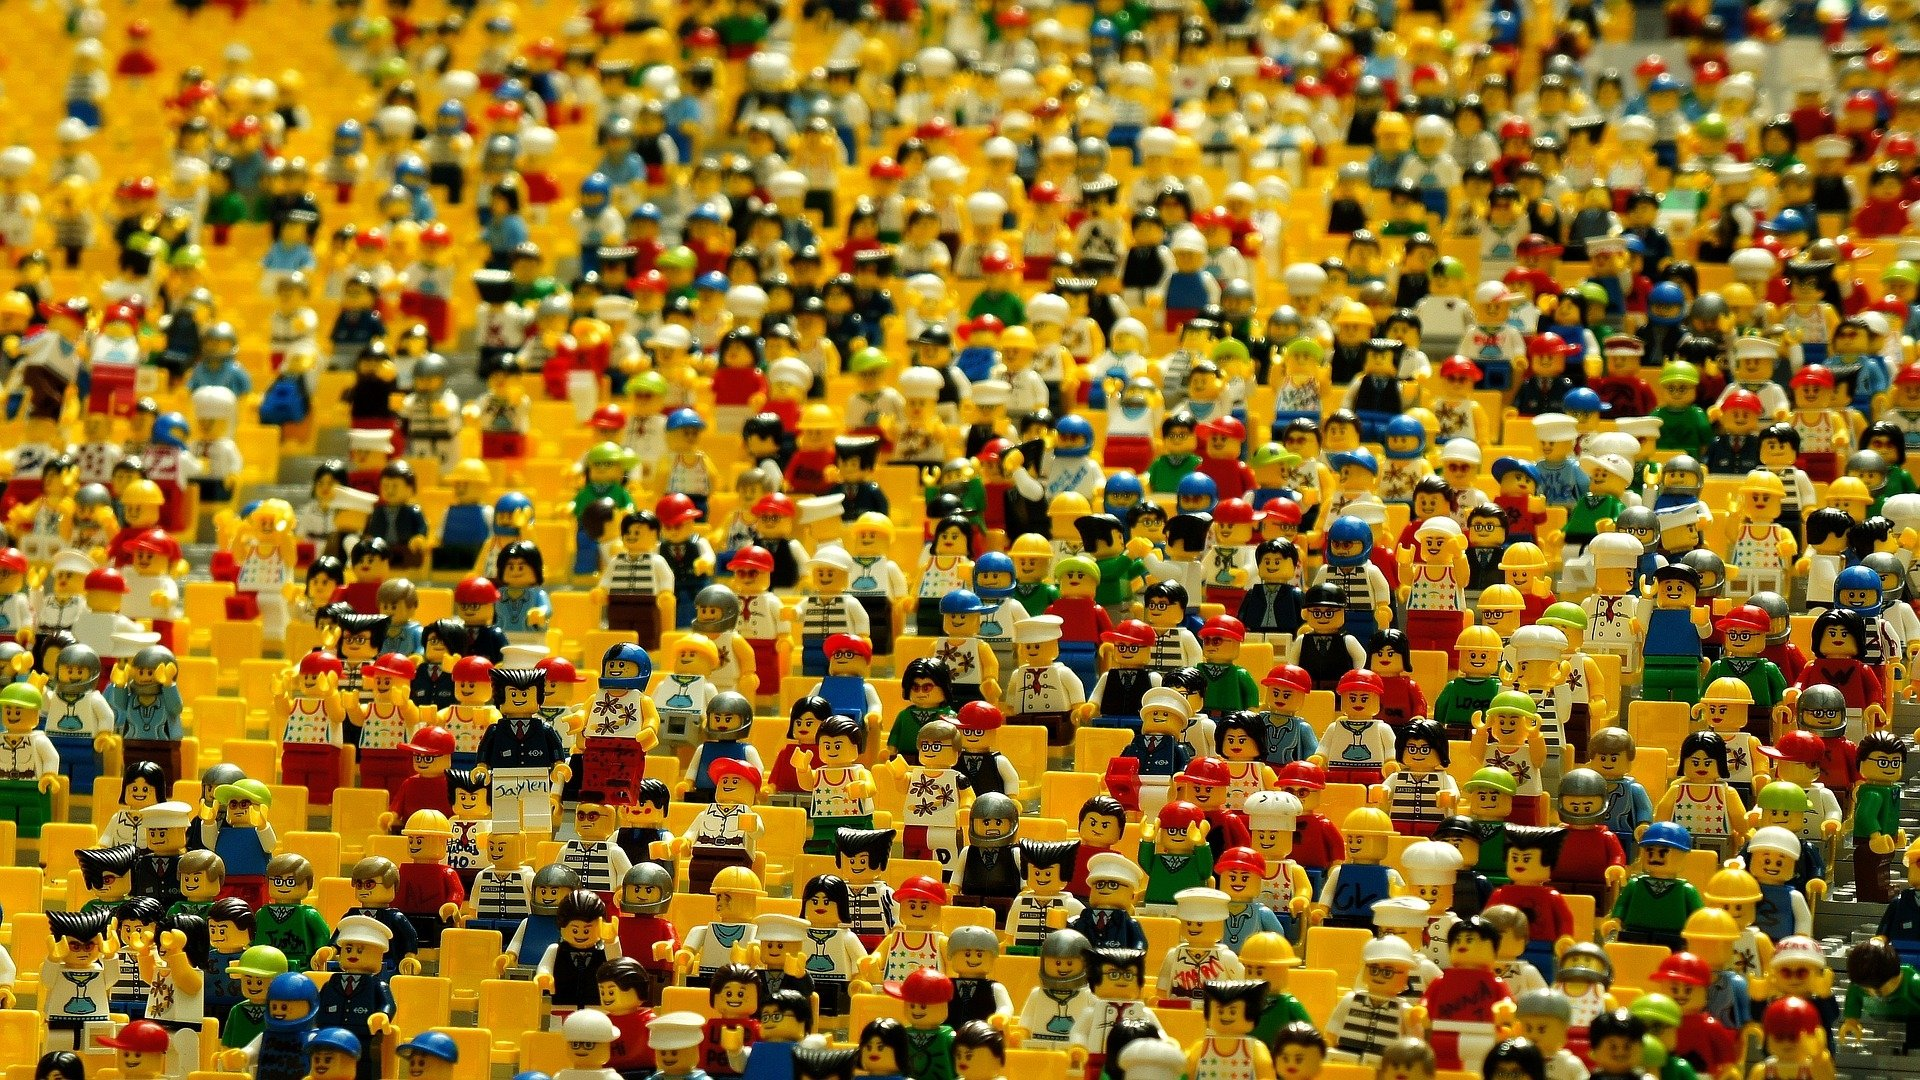 Lego minifigures HD Wallpaper | Background Image | 1920x1080 | ID:673335 -  Wallpaper Abyss